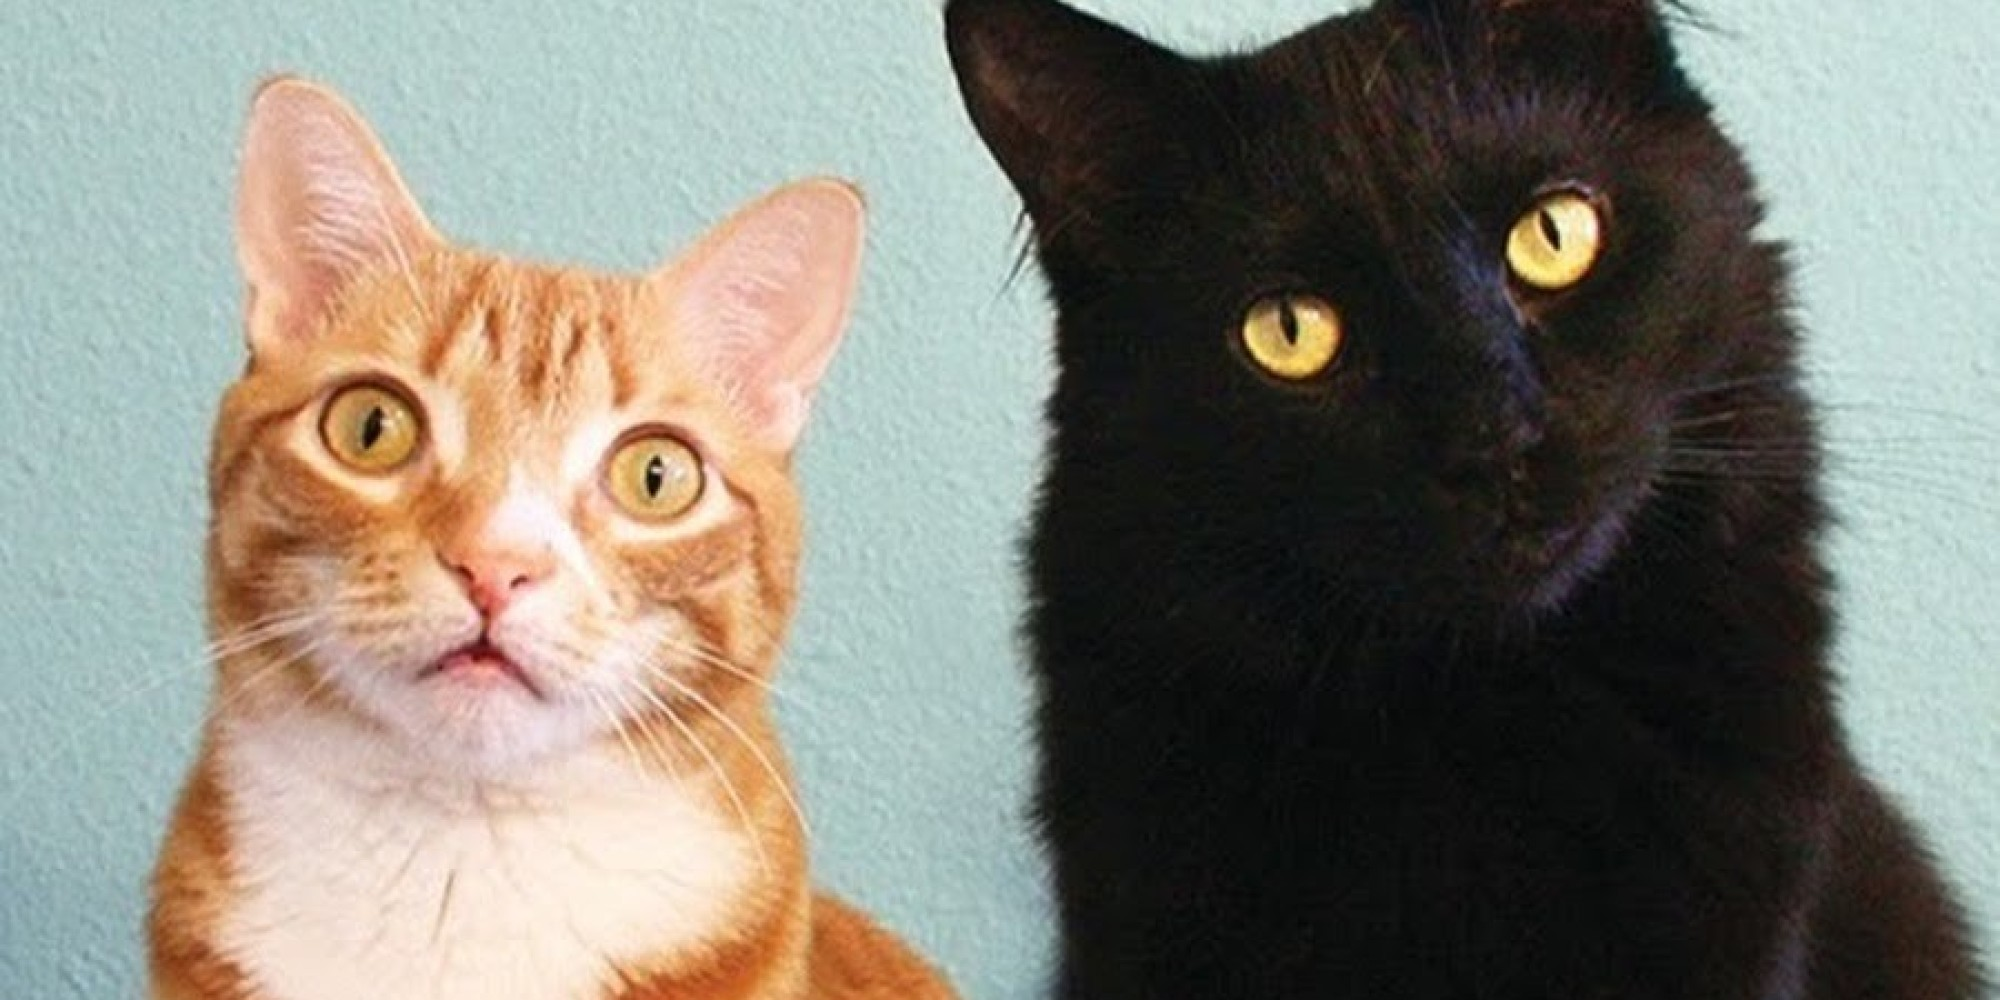 cat is a mans best friend adopting cats in the united states Adopt a pet from best friends animal sanctuary in kanab, utah we have dogs, cats, horses, goats, birds (parrots), rabbits, pigs and other animals.